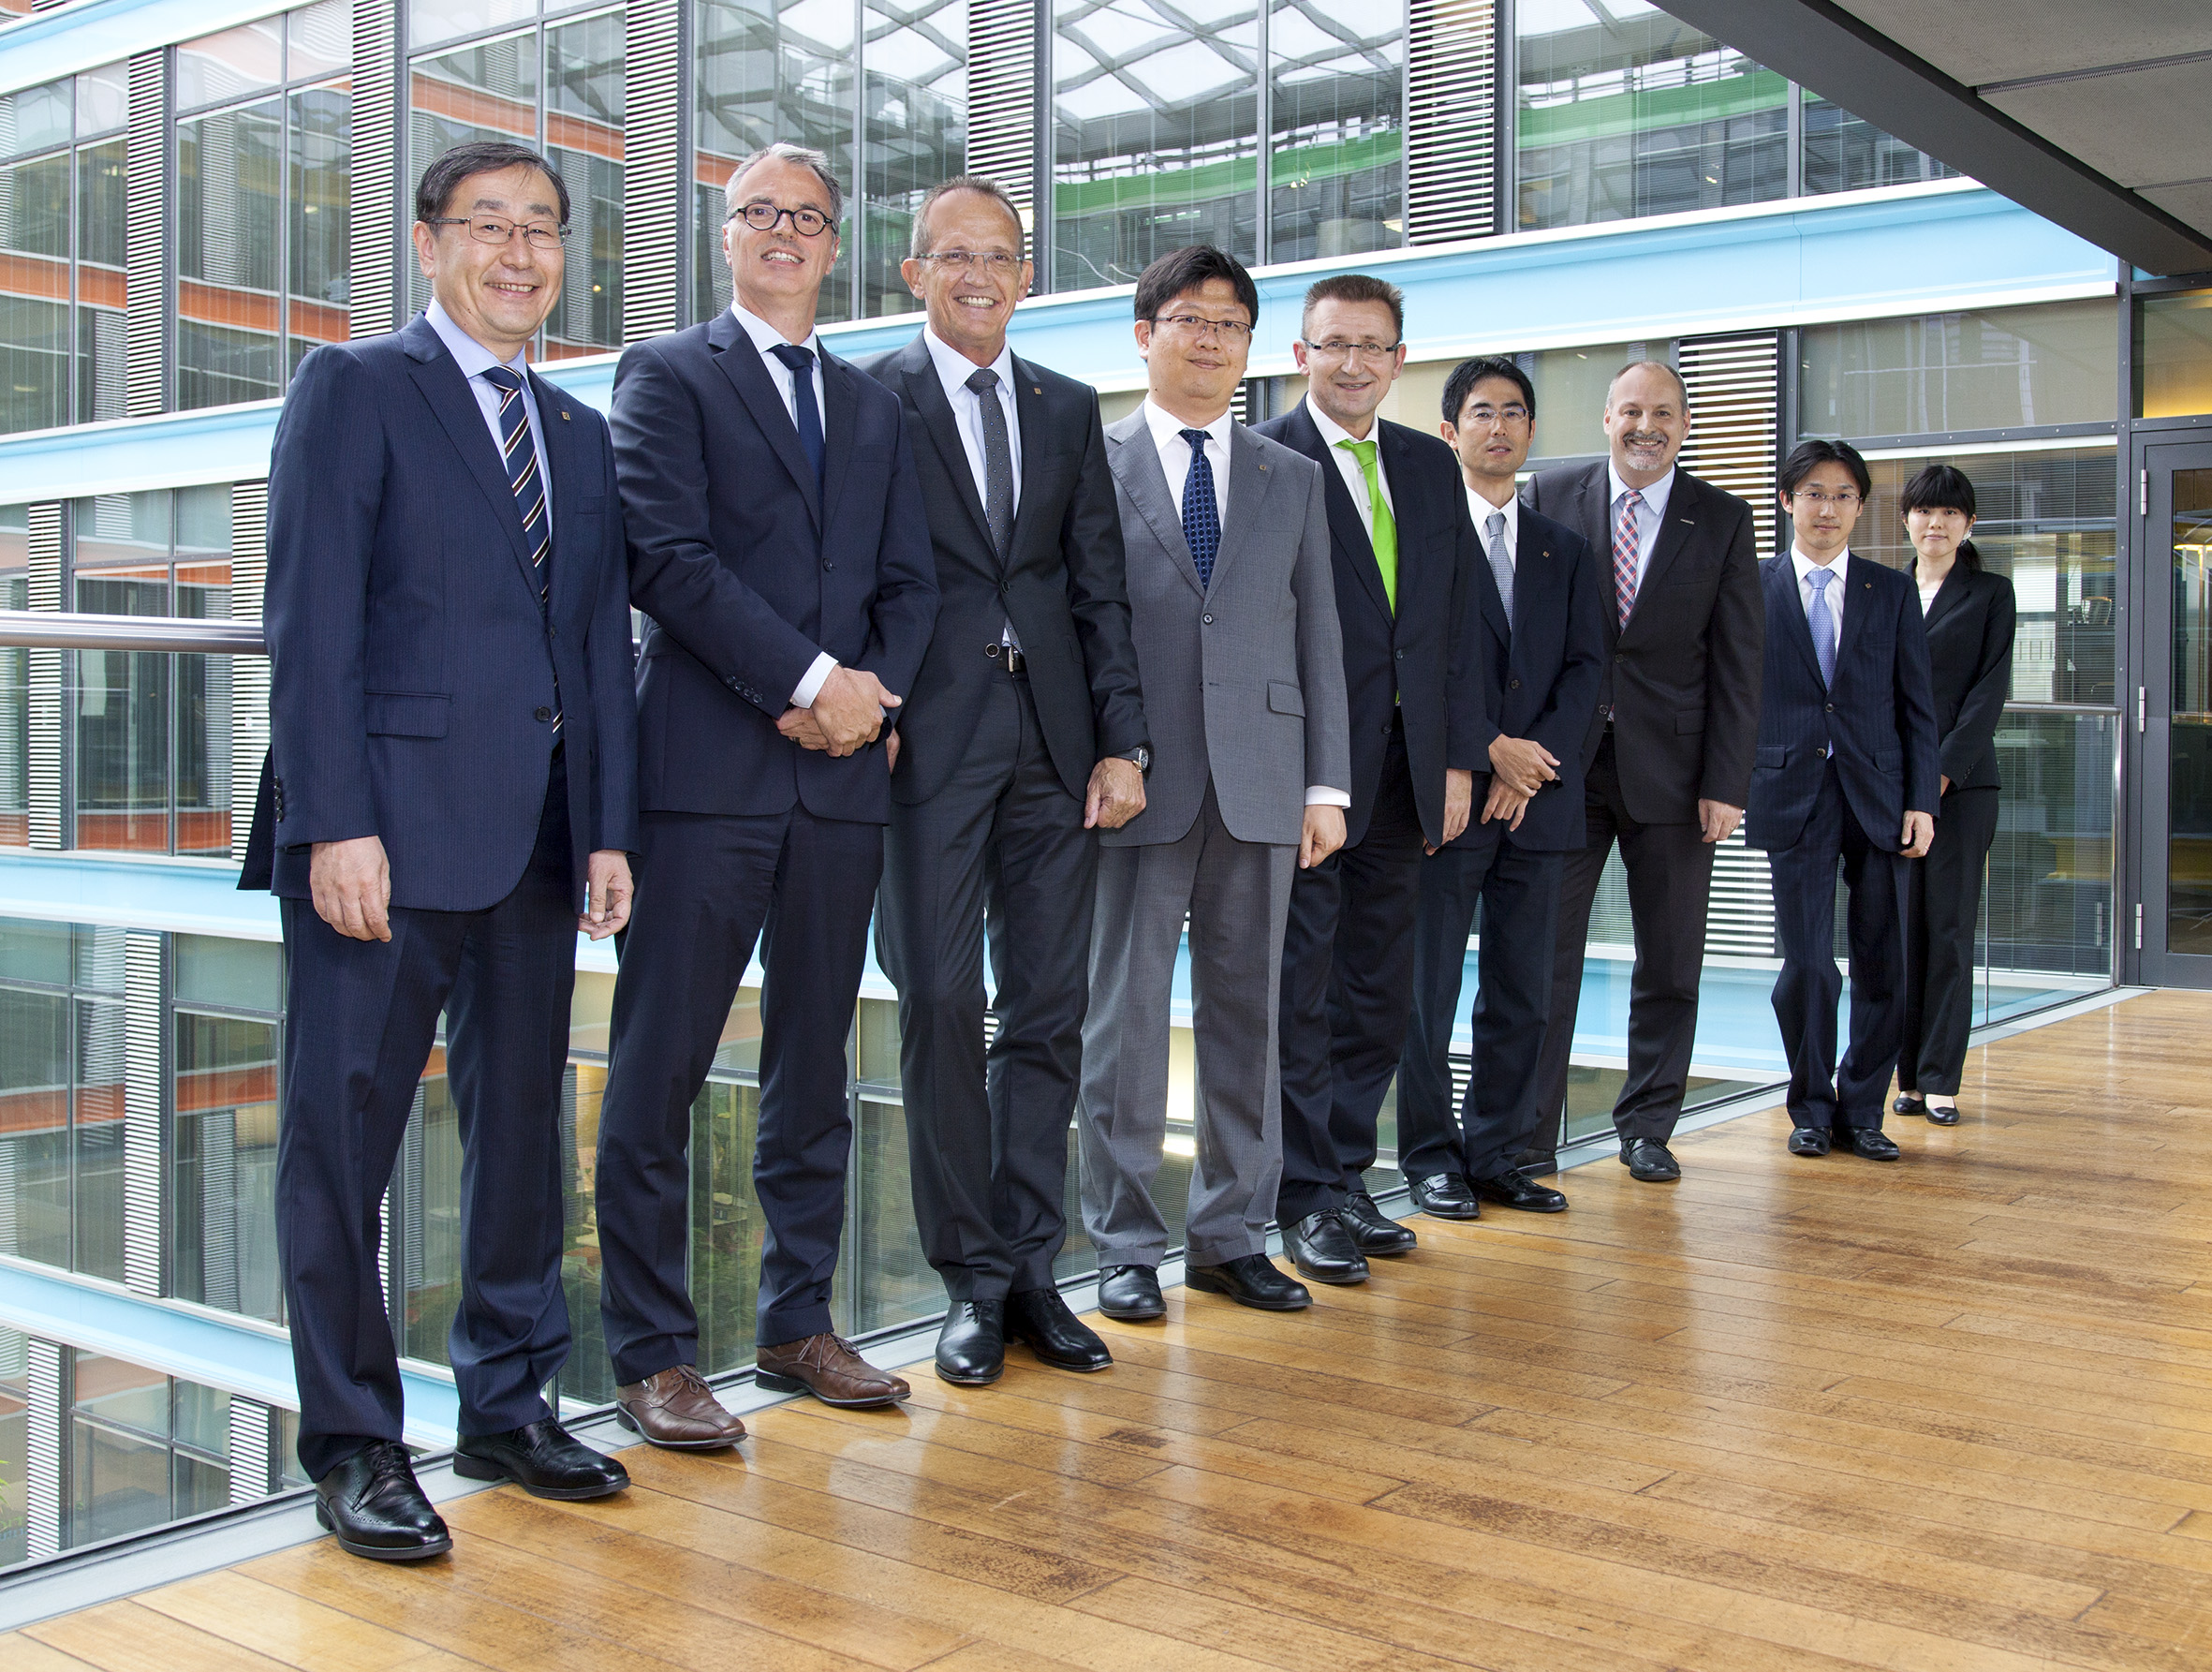 Officials of KYOCERA and Ceyoniq after the signing of the agreement in Duesseldorf